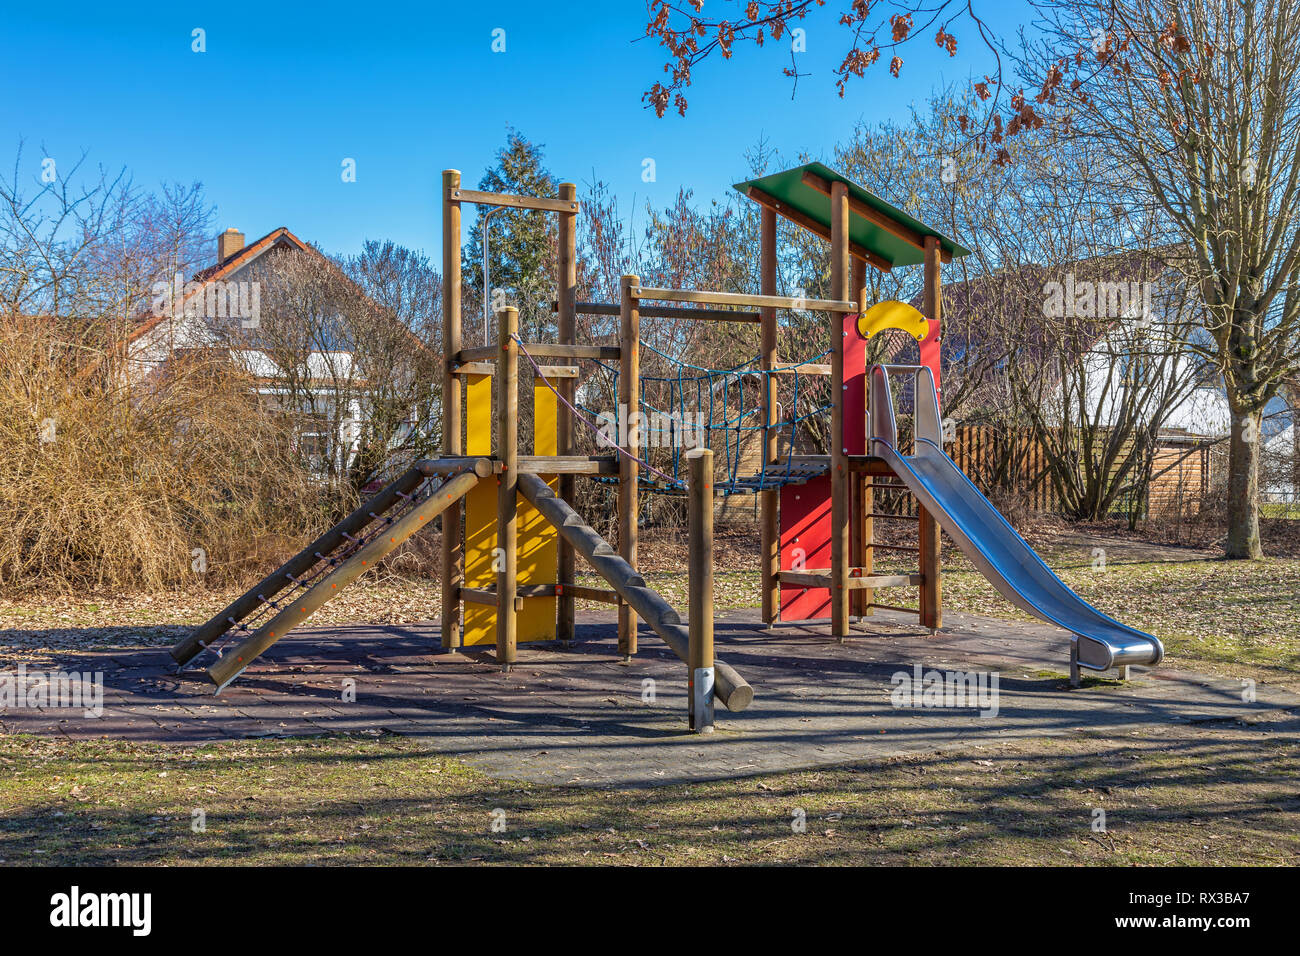 Jungle gym on a deserted playground in late autumn - Stock Image